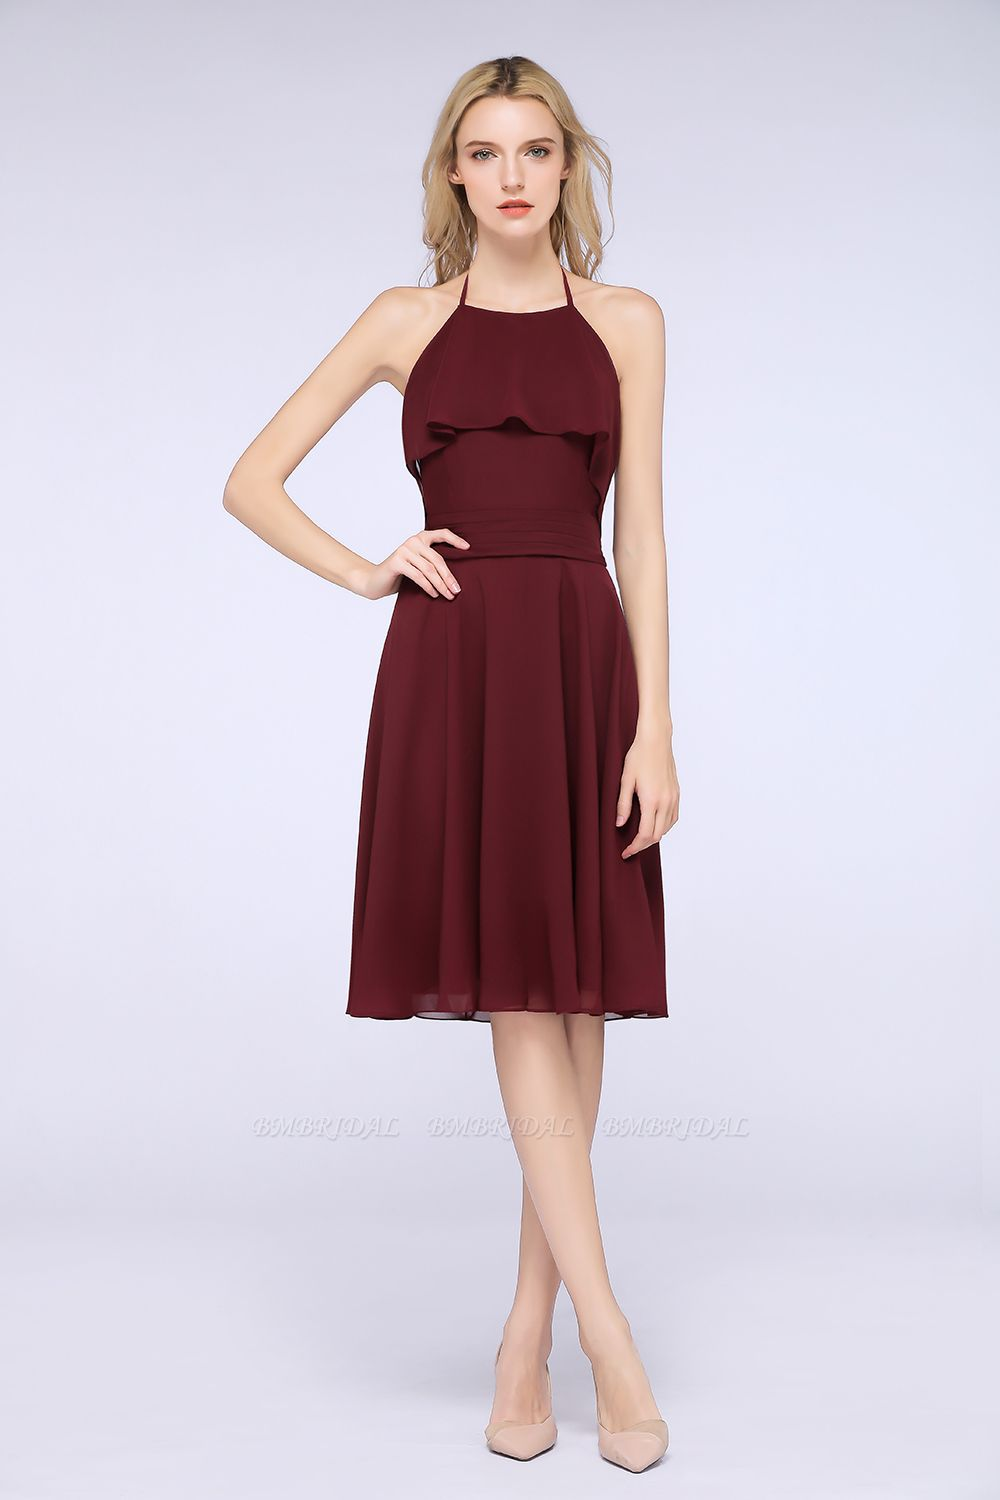 Gorgeous Halter Sleeveless Chiffon Short Bridesmaid Dress with Ruffle